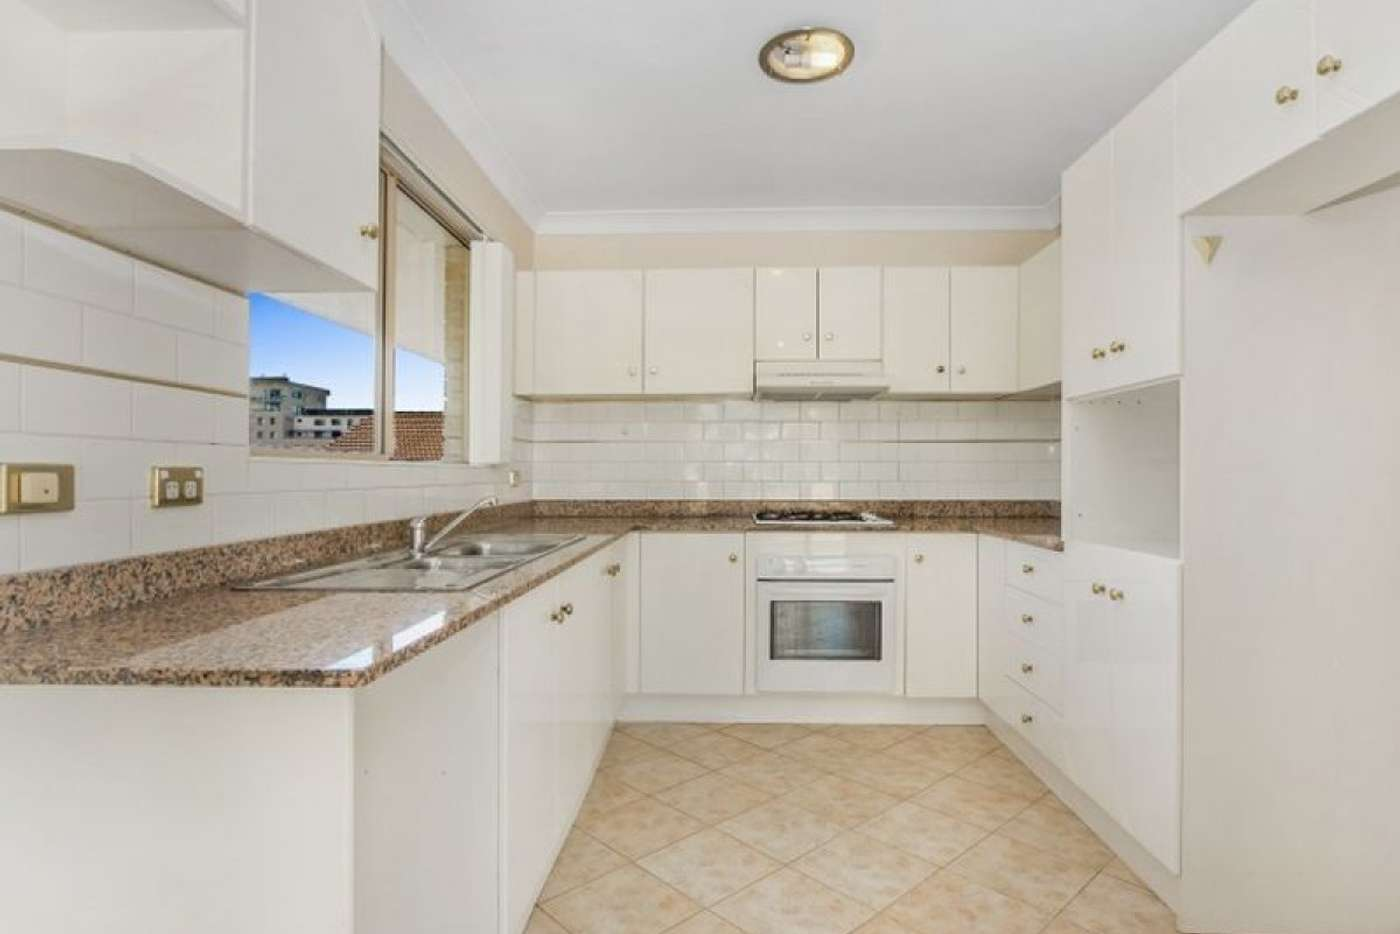 Main view of Homely apartment listing, 12/5-7 Sorrell Street, Parramatta NSW 2150